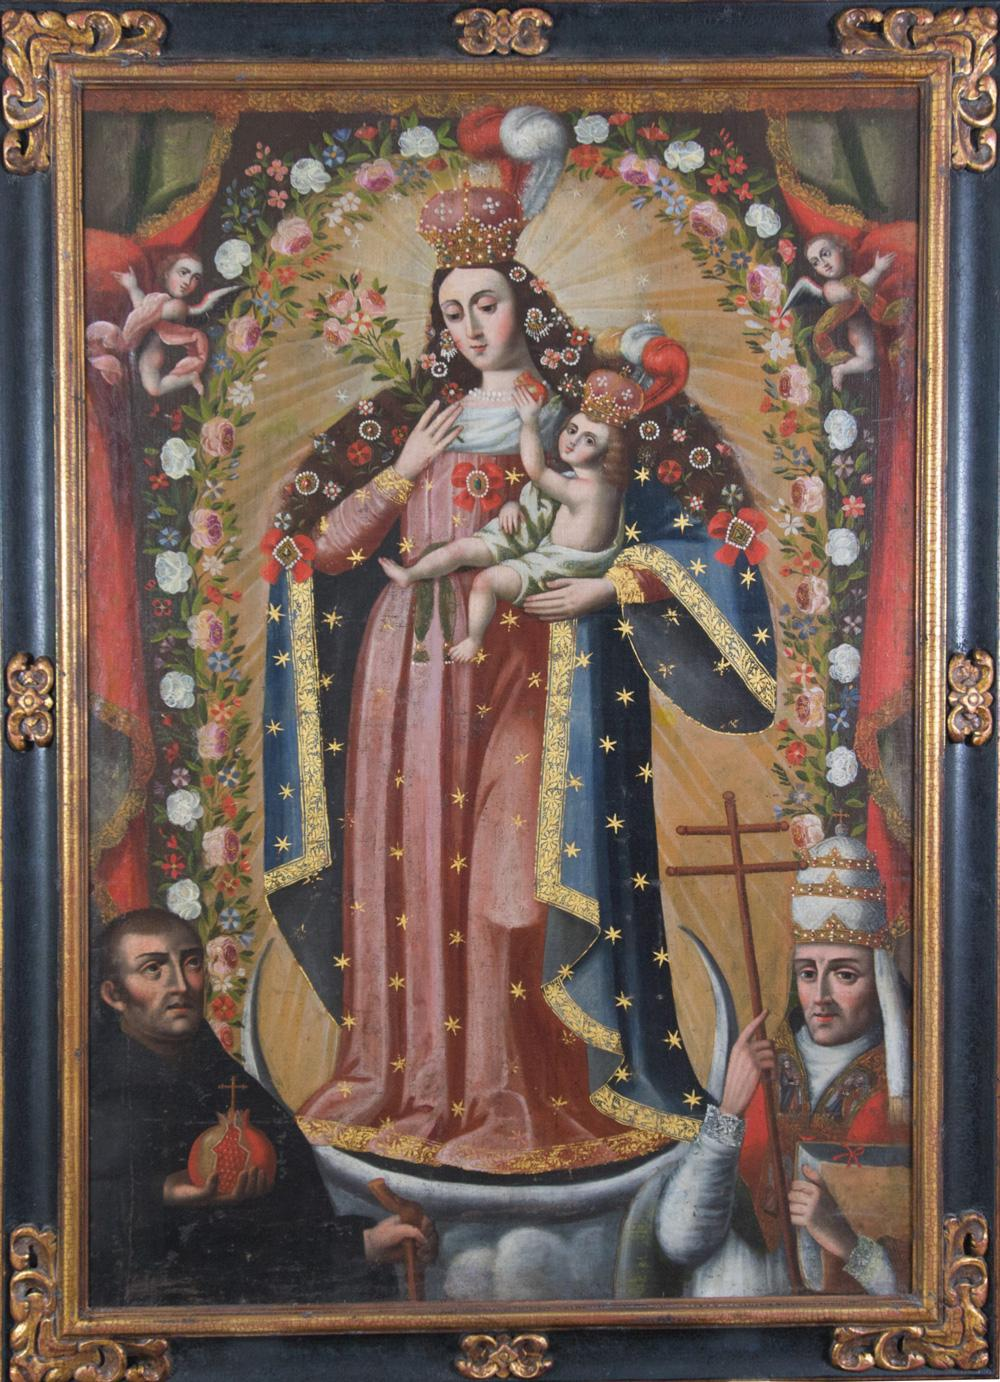 Cuzco School, Our Lady of the Remedies of La Paz, ca. 1750. Oil on canvas. Museum purchase through the Richard M. and Rosann Gelvin Noel Fund. 2018-1-1